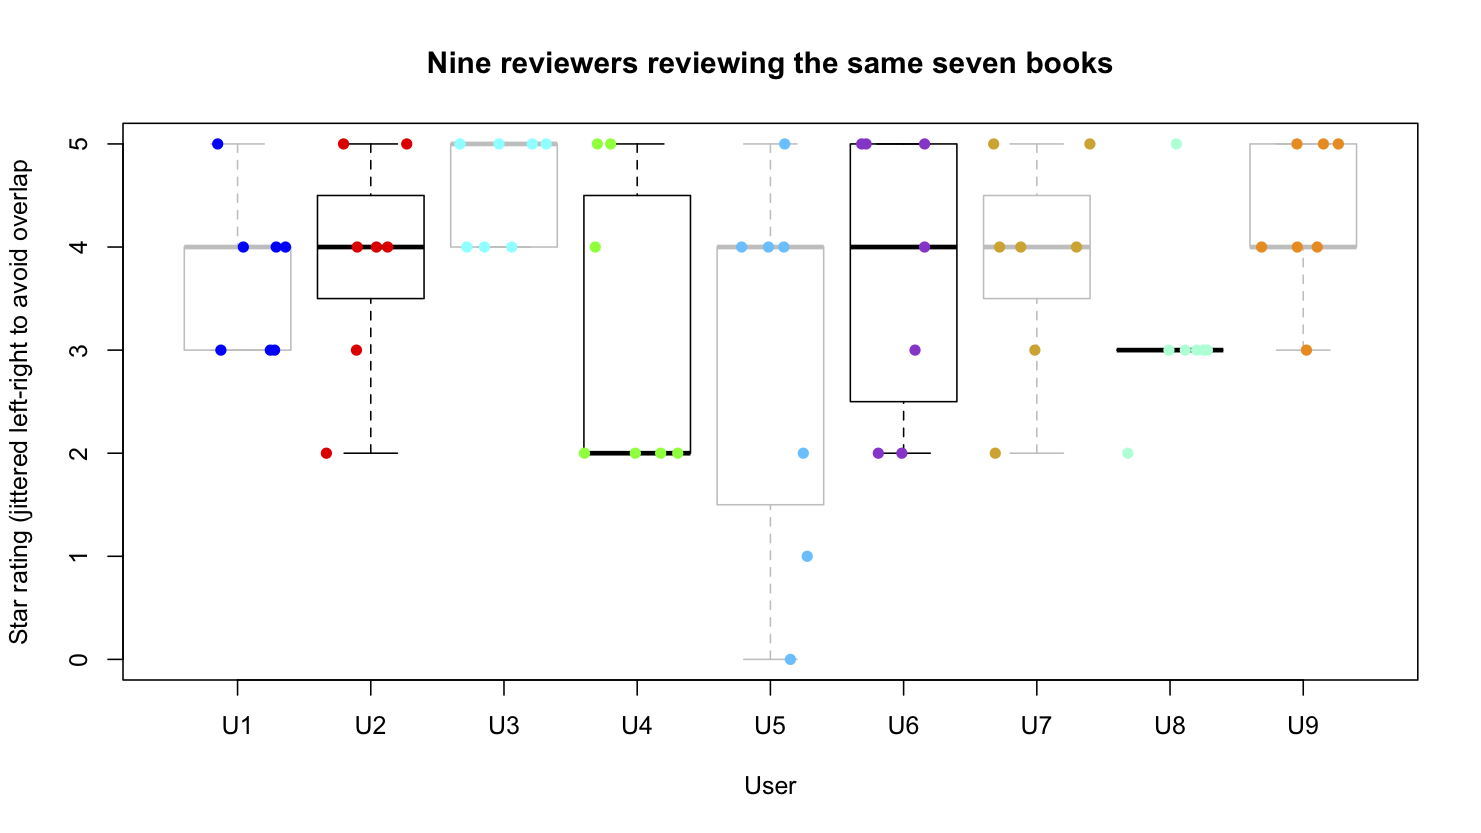 figures/reviewer-comparisons.png